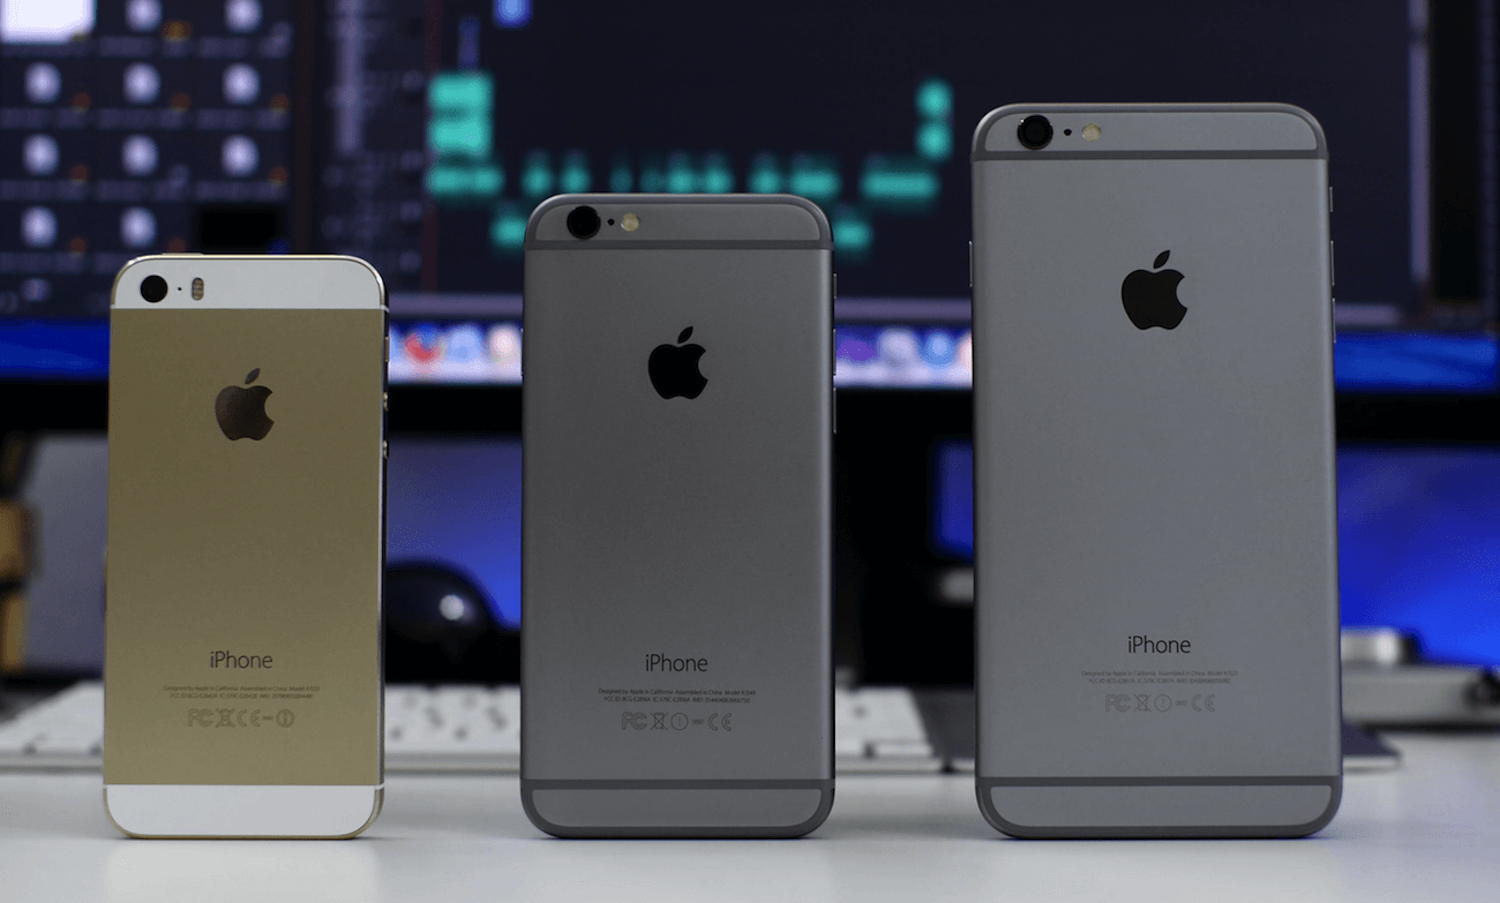 Where is cheaper to buy an iPhone in Russia: January 2016